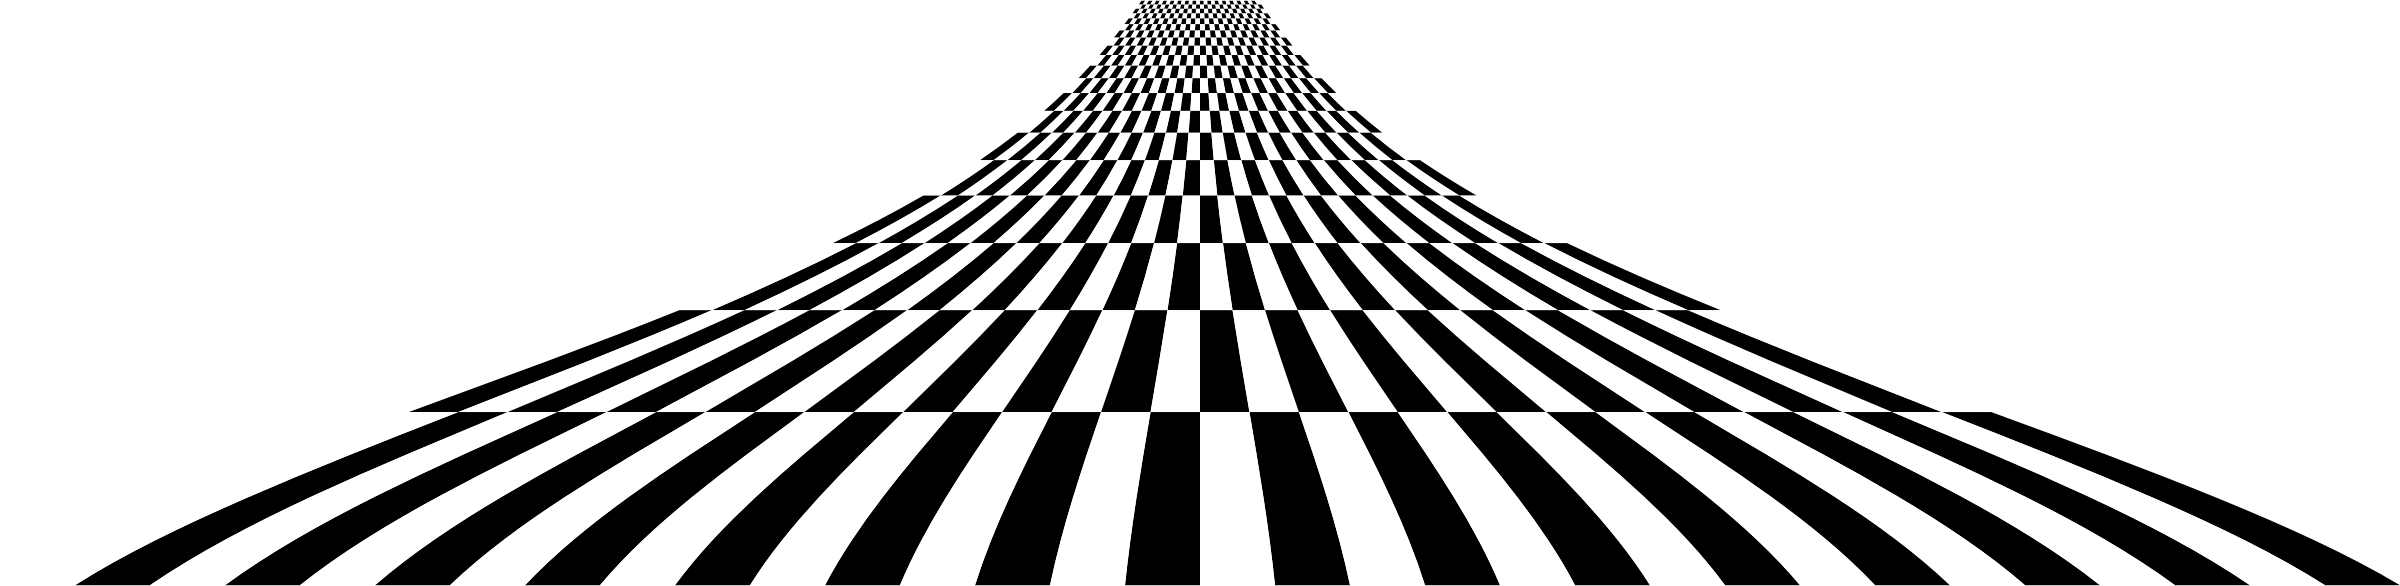 Checkerboard Perspective 3 by GDJ